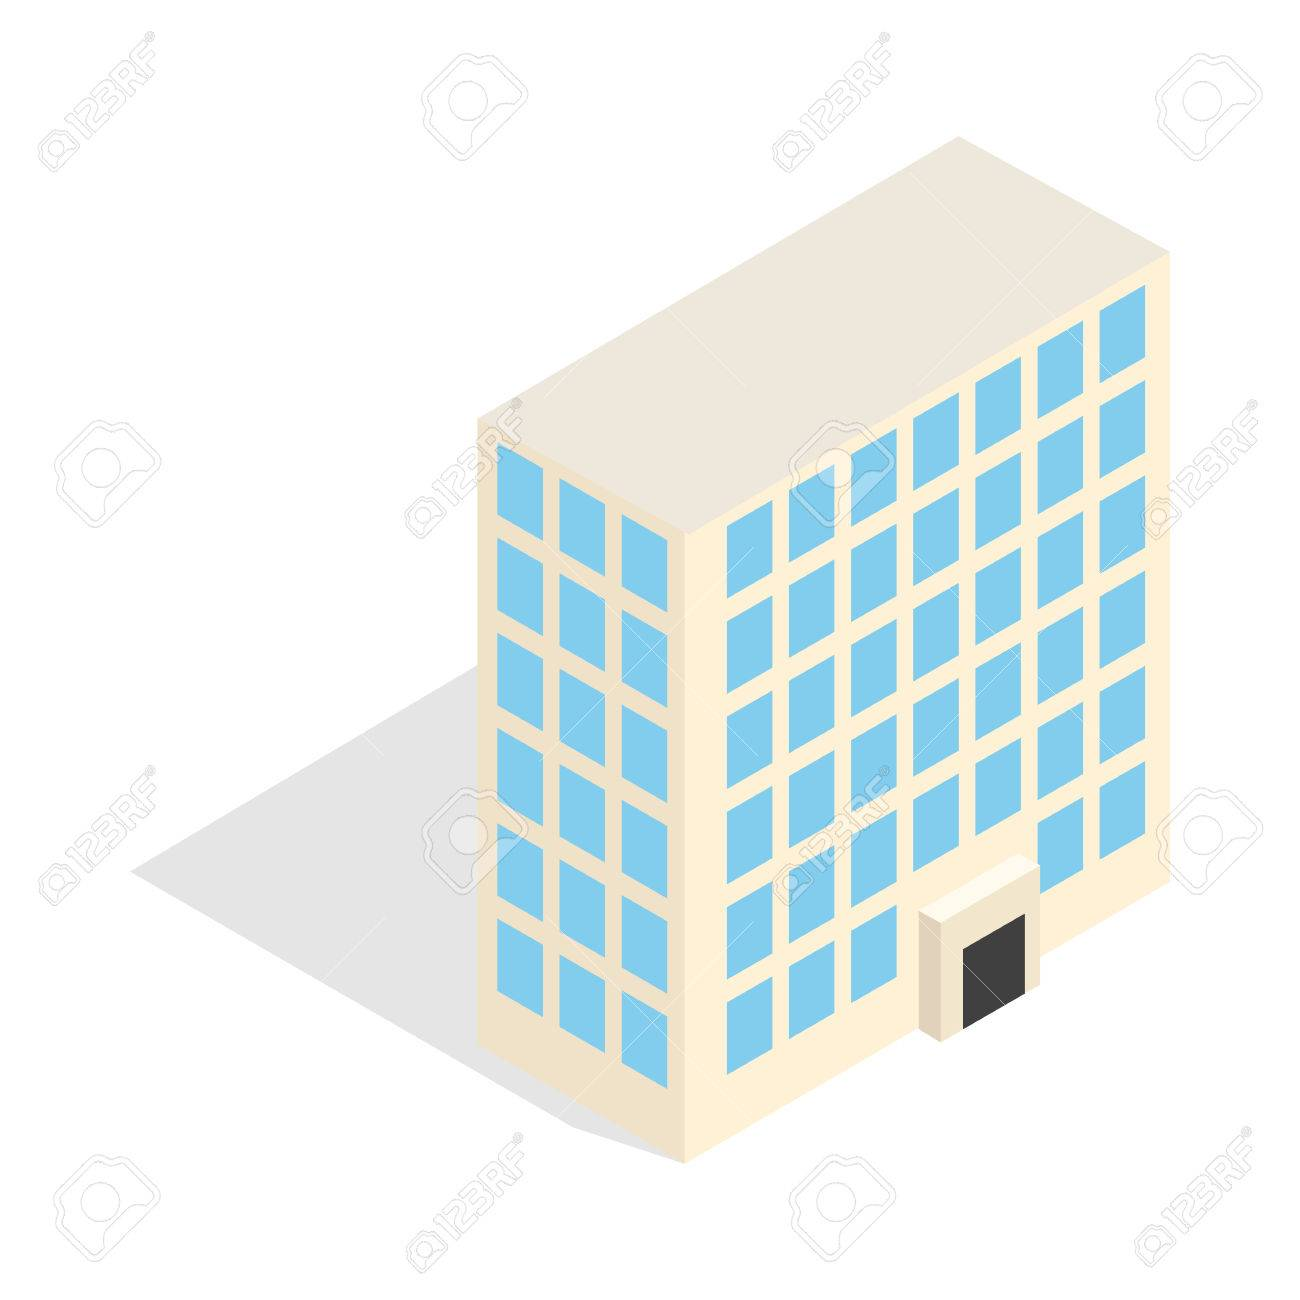 Office building icon in isometric 3d style isolated on white office building icon in isometric 3d style isolated on white background construction symbol stock vector biocorpaavc